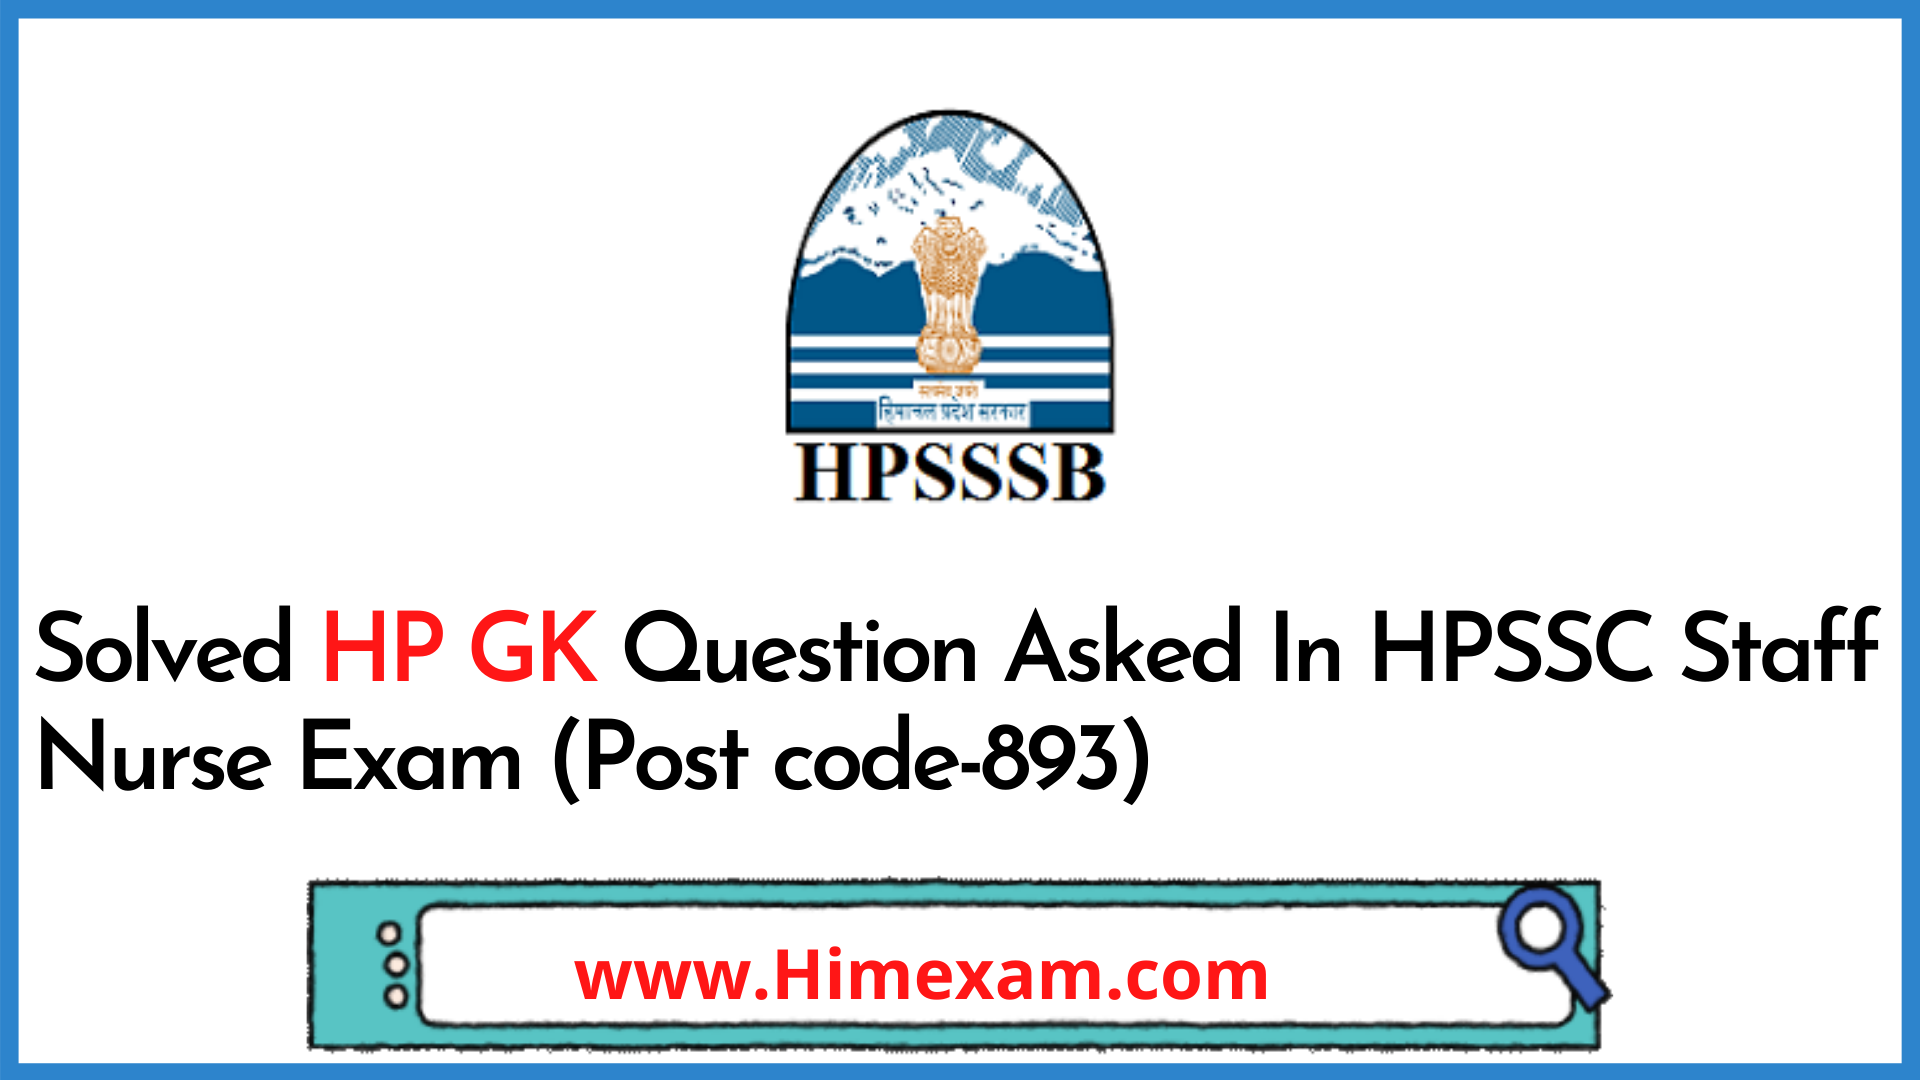 Solved HP GK Question Asked In HPSSC Staff Nurse Exam (Post code-893)